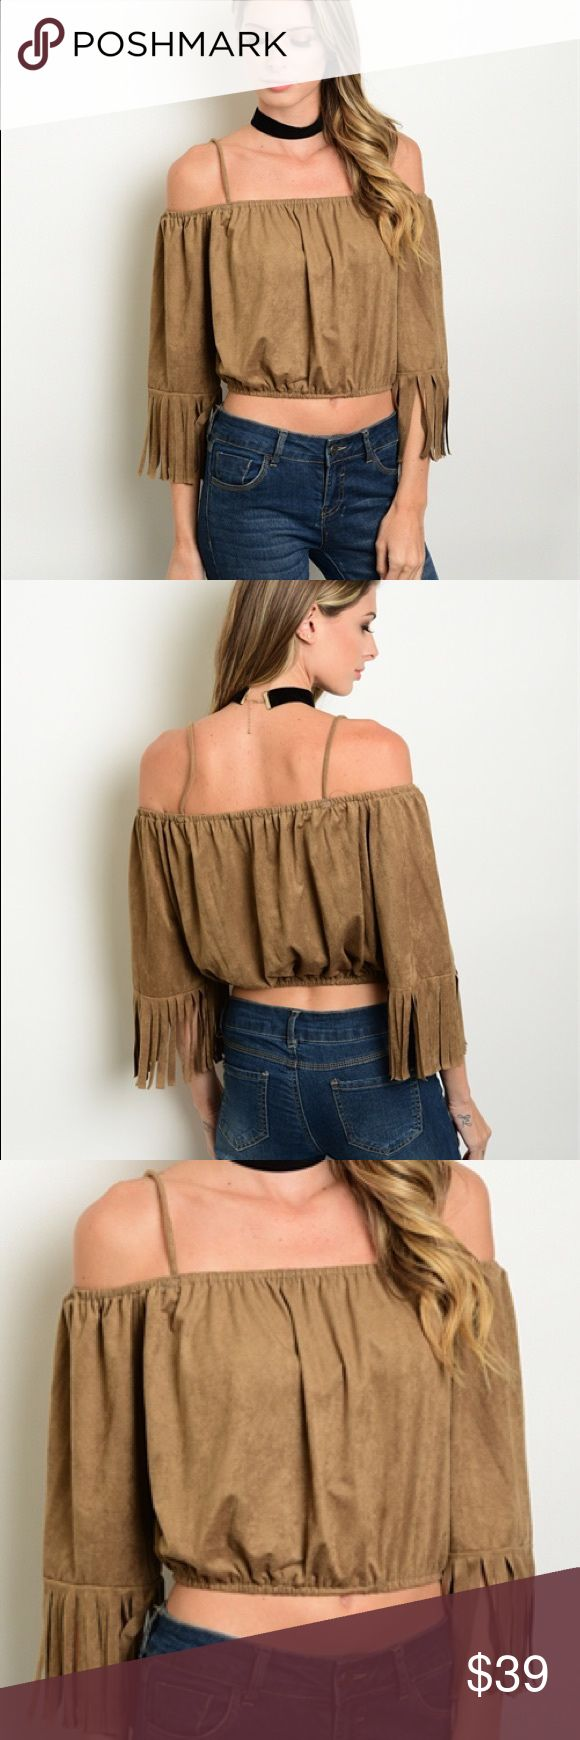 Suzanne suede fringe top Adorable crop top with a gathered hem, long sleeves with fringe trim and exposed shoulders. 92% polyester 8% spandex. amandine boutique Tops Crop Tops